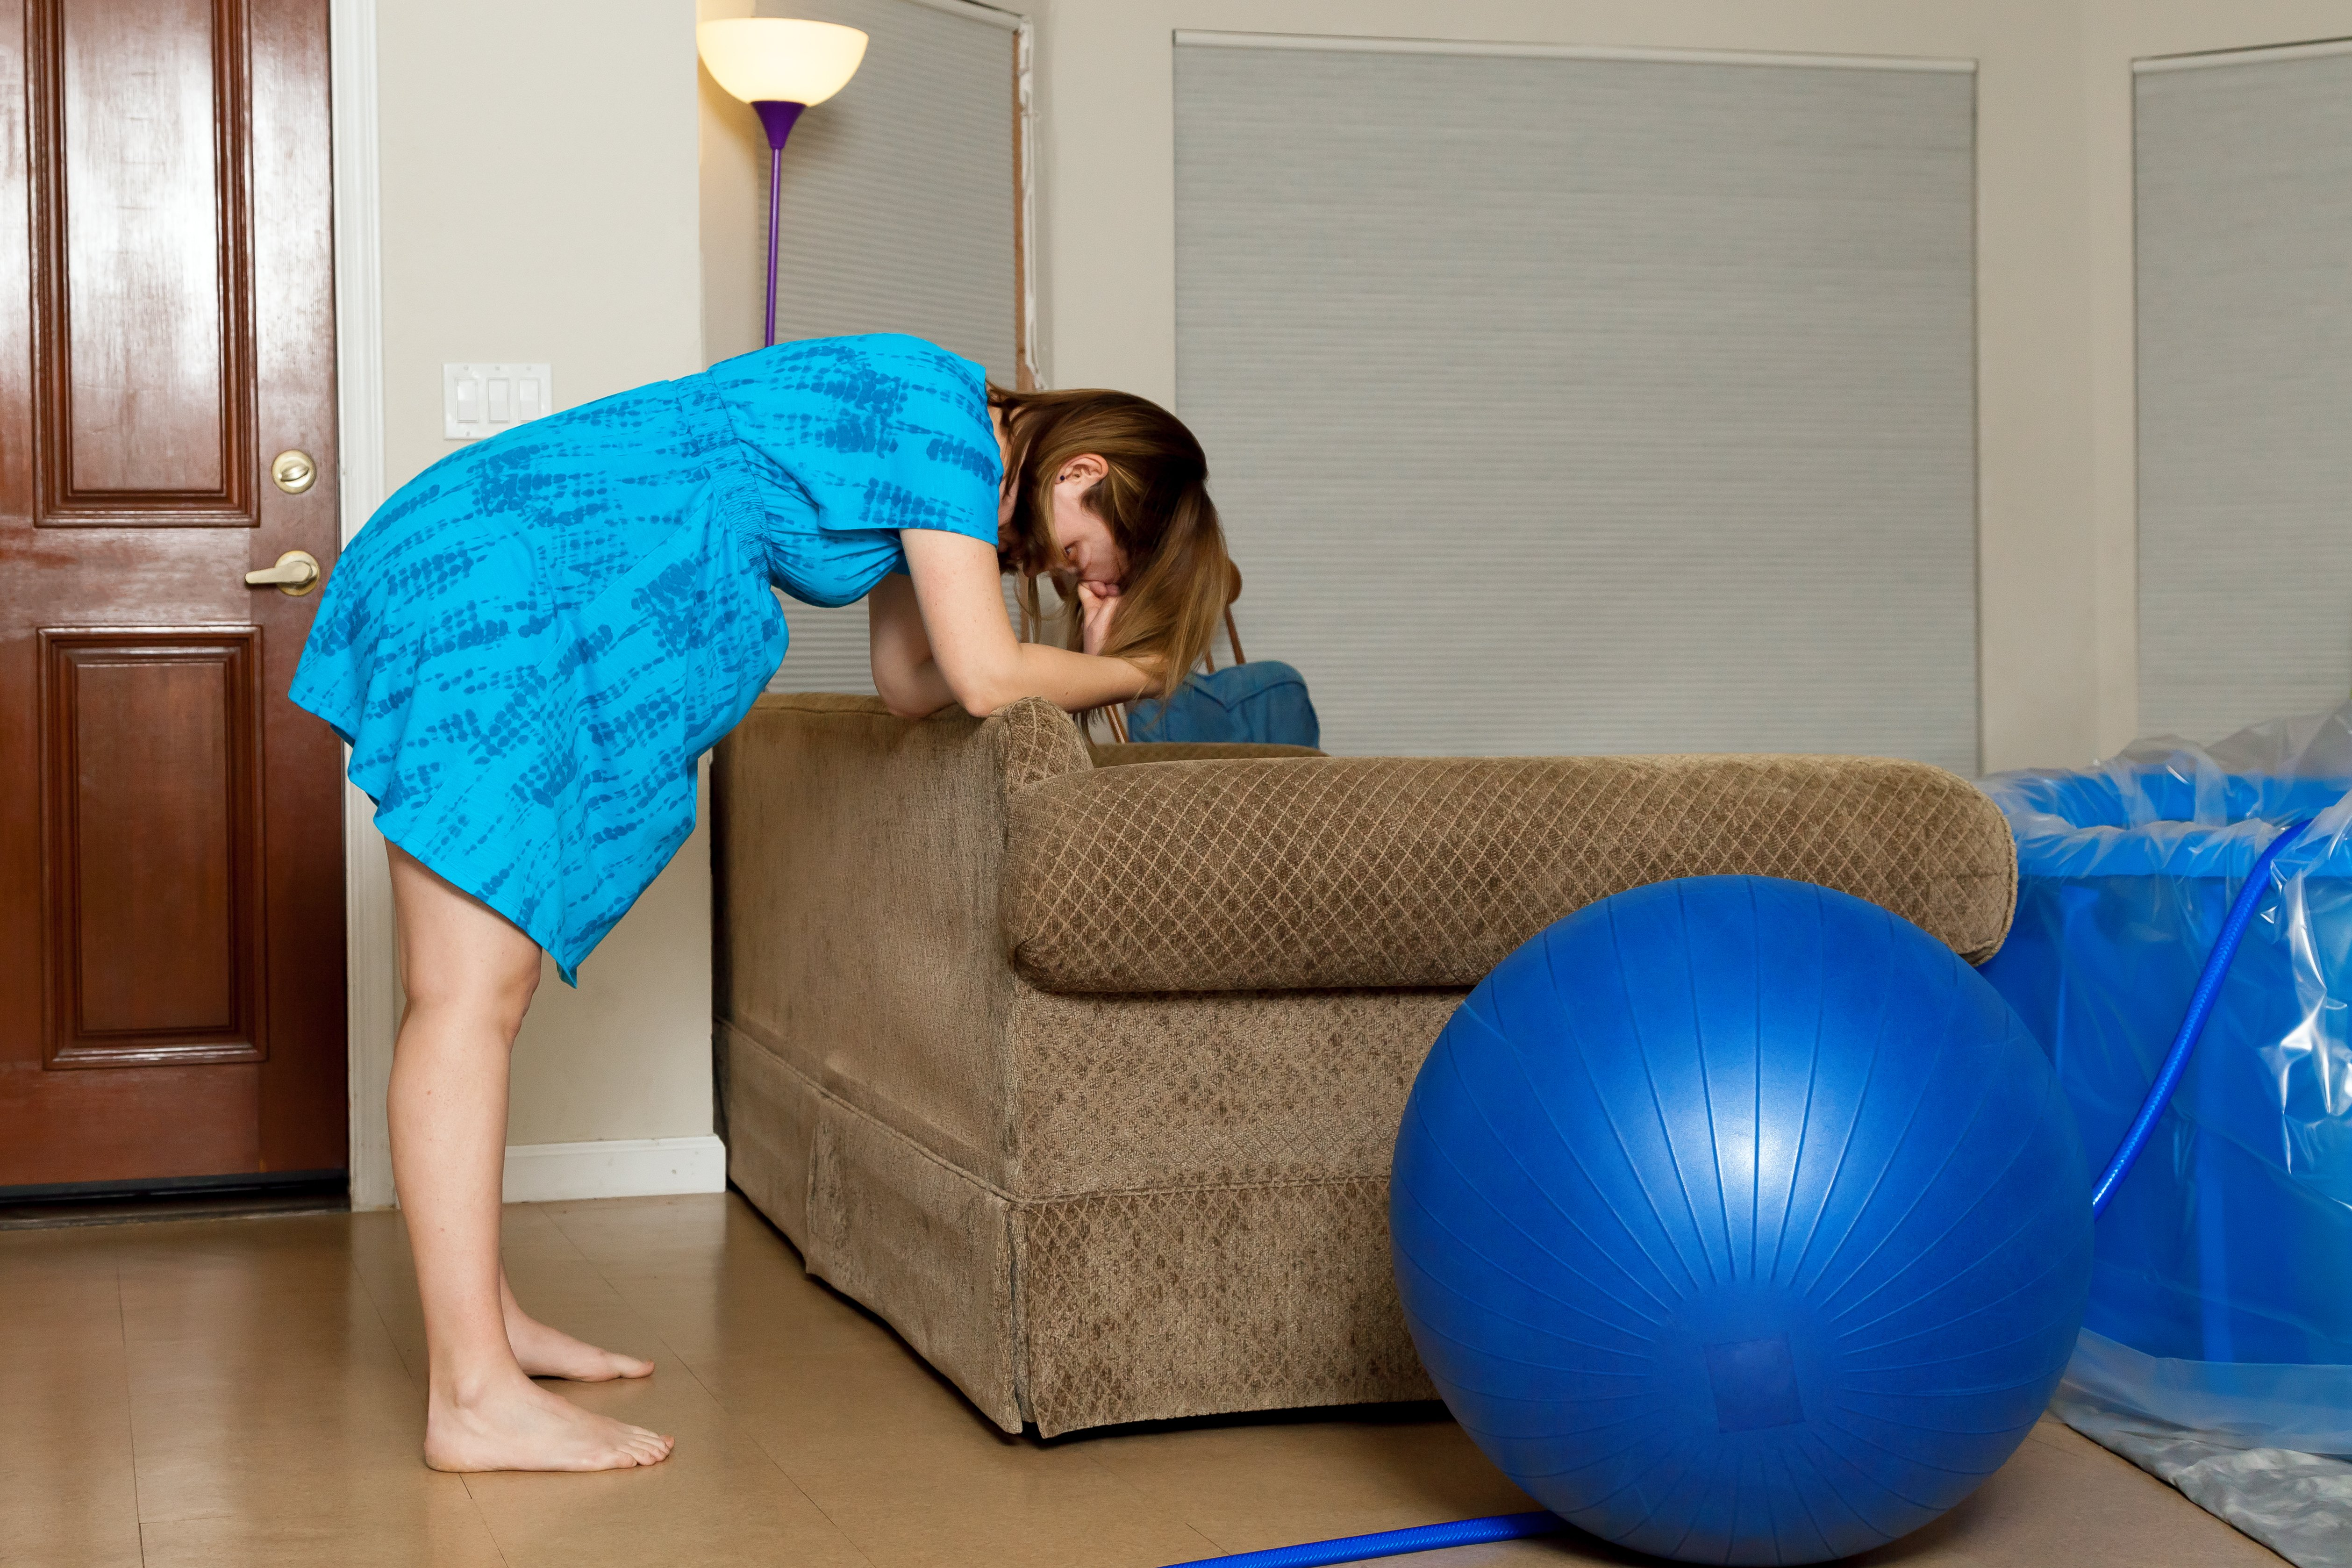 Pregnant woman leaning on couch